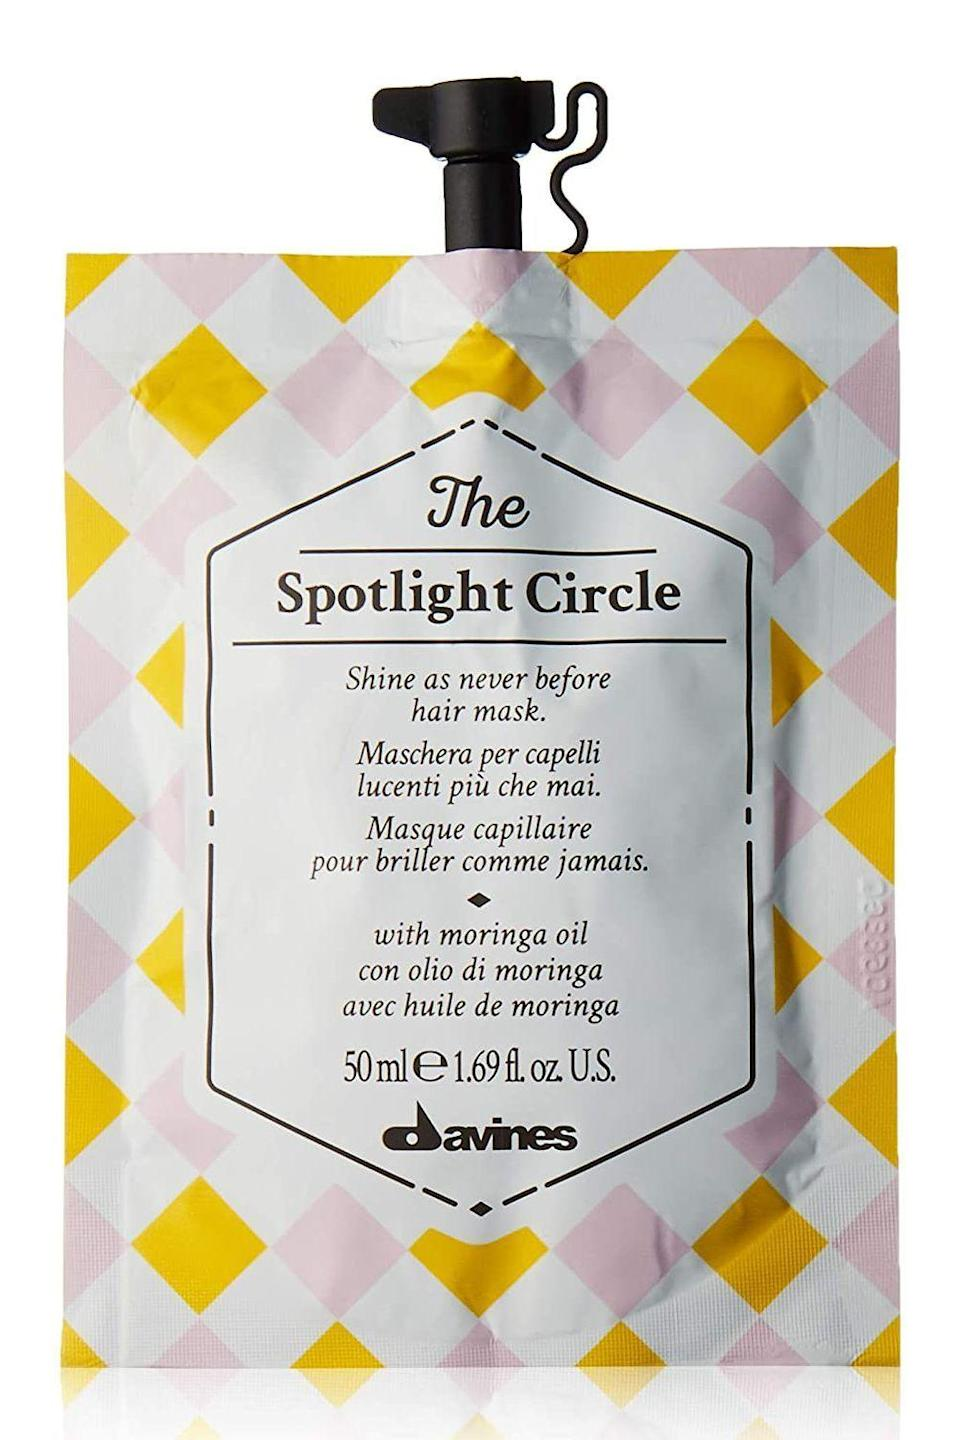 """<p><strong>Davines</strong></p><p>amazon.com</p><p><strong>$10.00</strong></p><p><a href=""""https://www.amazon.com/dp/B076QCQ8HY?tag=syn-yahoo-20&ascsubtag=%5Bartid%7C2140.g.35717314%5Bsrc%7Cyahoo-us"""" rel=""""nofollow noopener"""" target=""""_blank"""" data-ylk=""""slk:shop"""" class=""""link rapid-noclick-resp"""">shop</a></p><p>A <a href=""""https://www.cosmopolitan.com/style-beauty/beauty/advice/a5159/hair-mask-for-hair-type/"""" rel=""""nofollow noopener"""" target=""""_blank"""" data-ylk=""""slk:hair mask"""" class=""""link rapid-noclick-resp"""">hair mask</a> that doesn't weigh down even the most baby-fine strands?! Yes, it exists, and it comes inside this little packet with a clever closable lid. The formula is free of silicones, but full of vitamins, fatty acids, and proteins.</p>"""